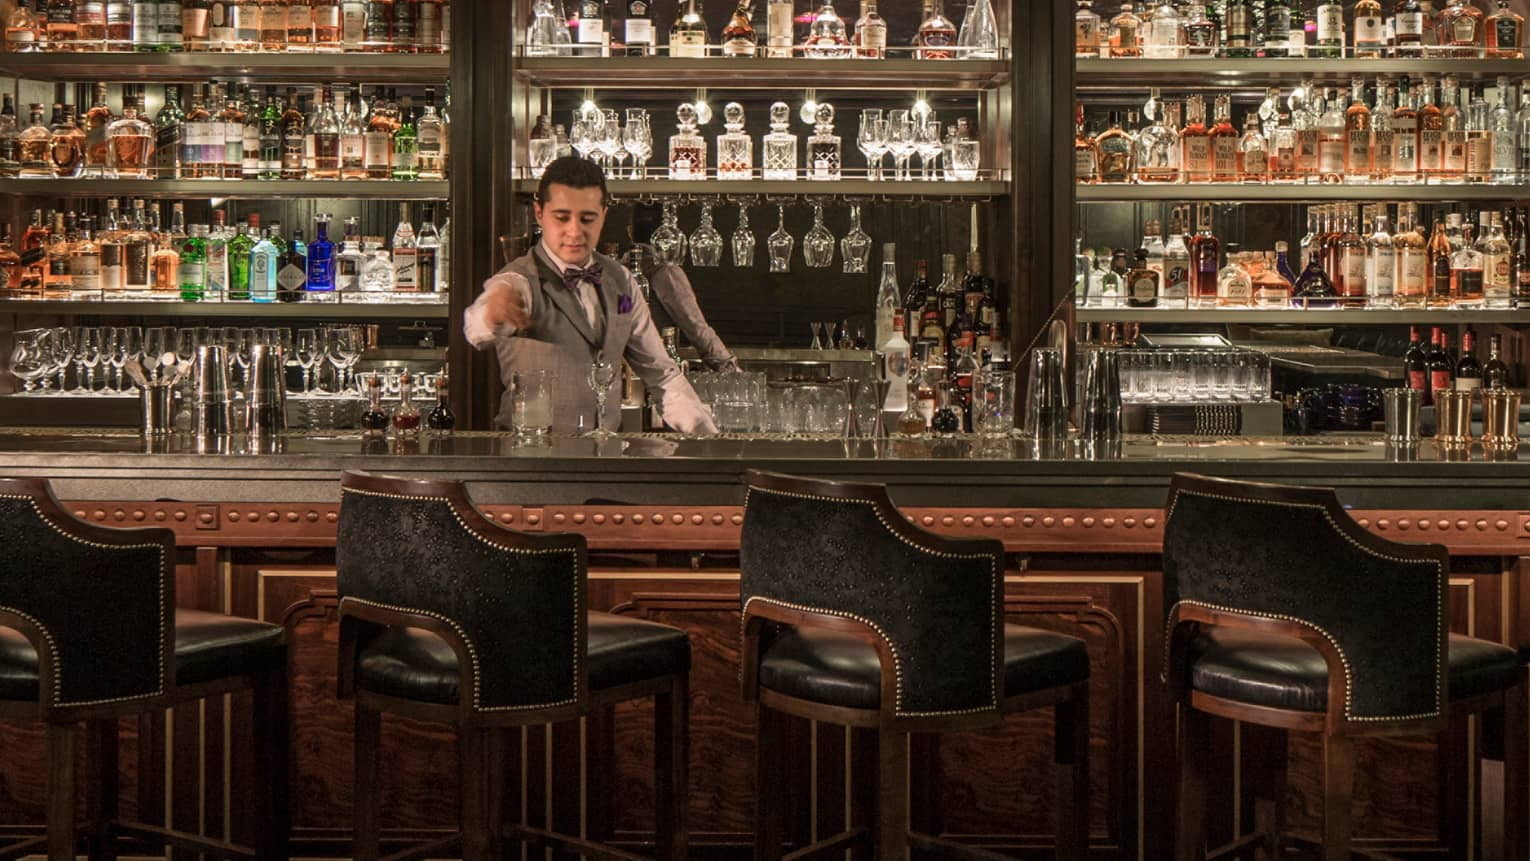 SIRR bartender in vest stands behind bar stirring cocktail, glasses and bottles lining wall behind him